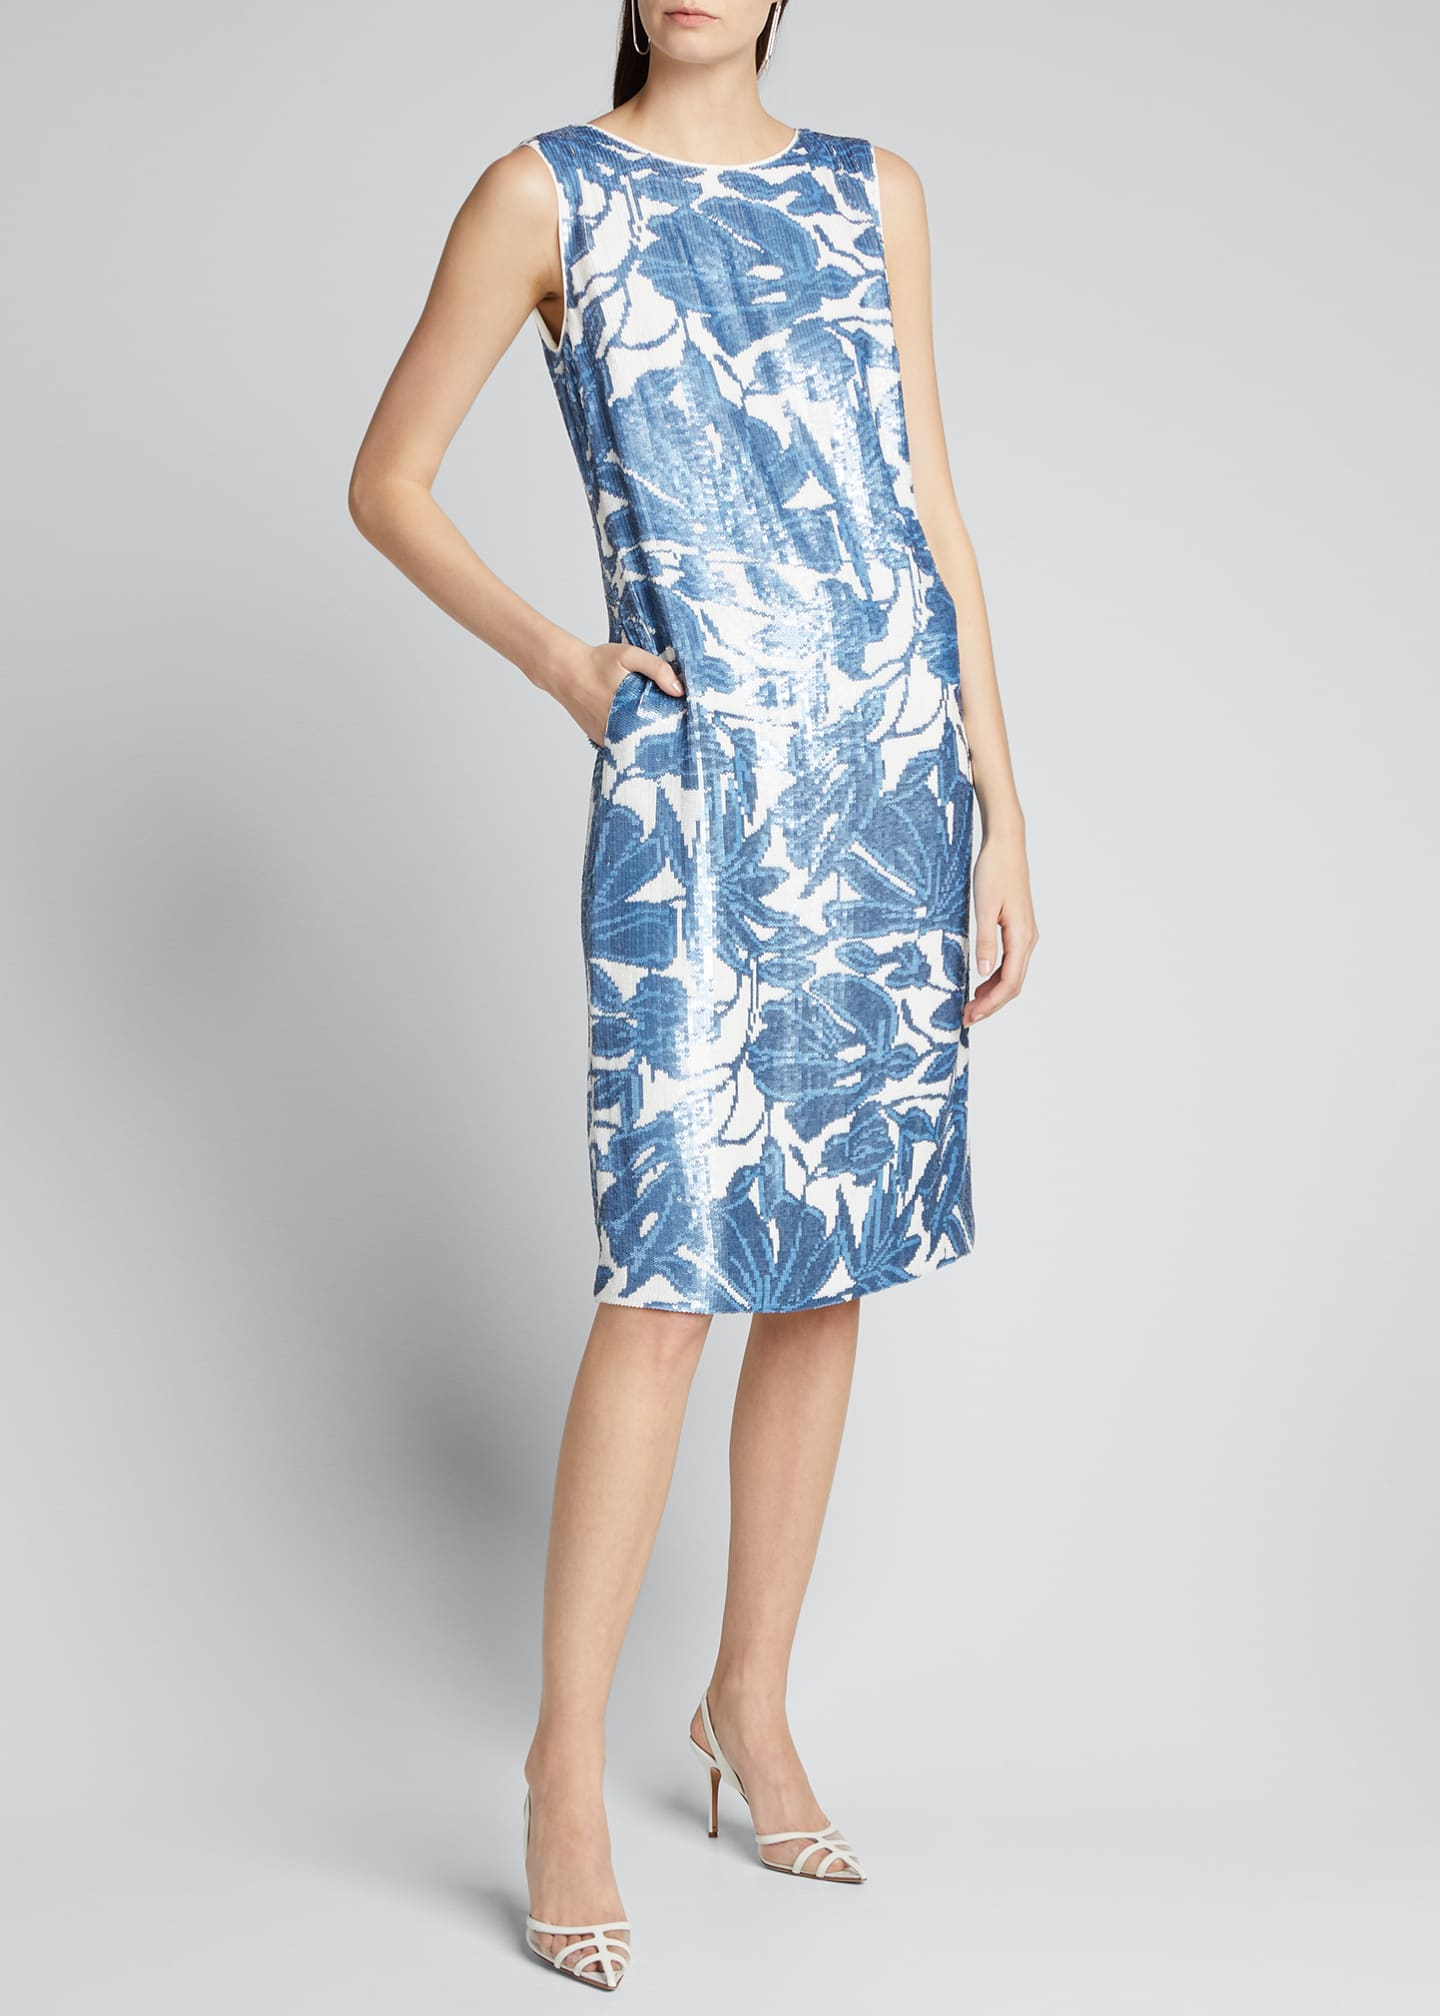 Image 3 of 5: Noah Floral Sequined Sleeveless Dress